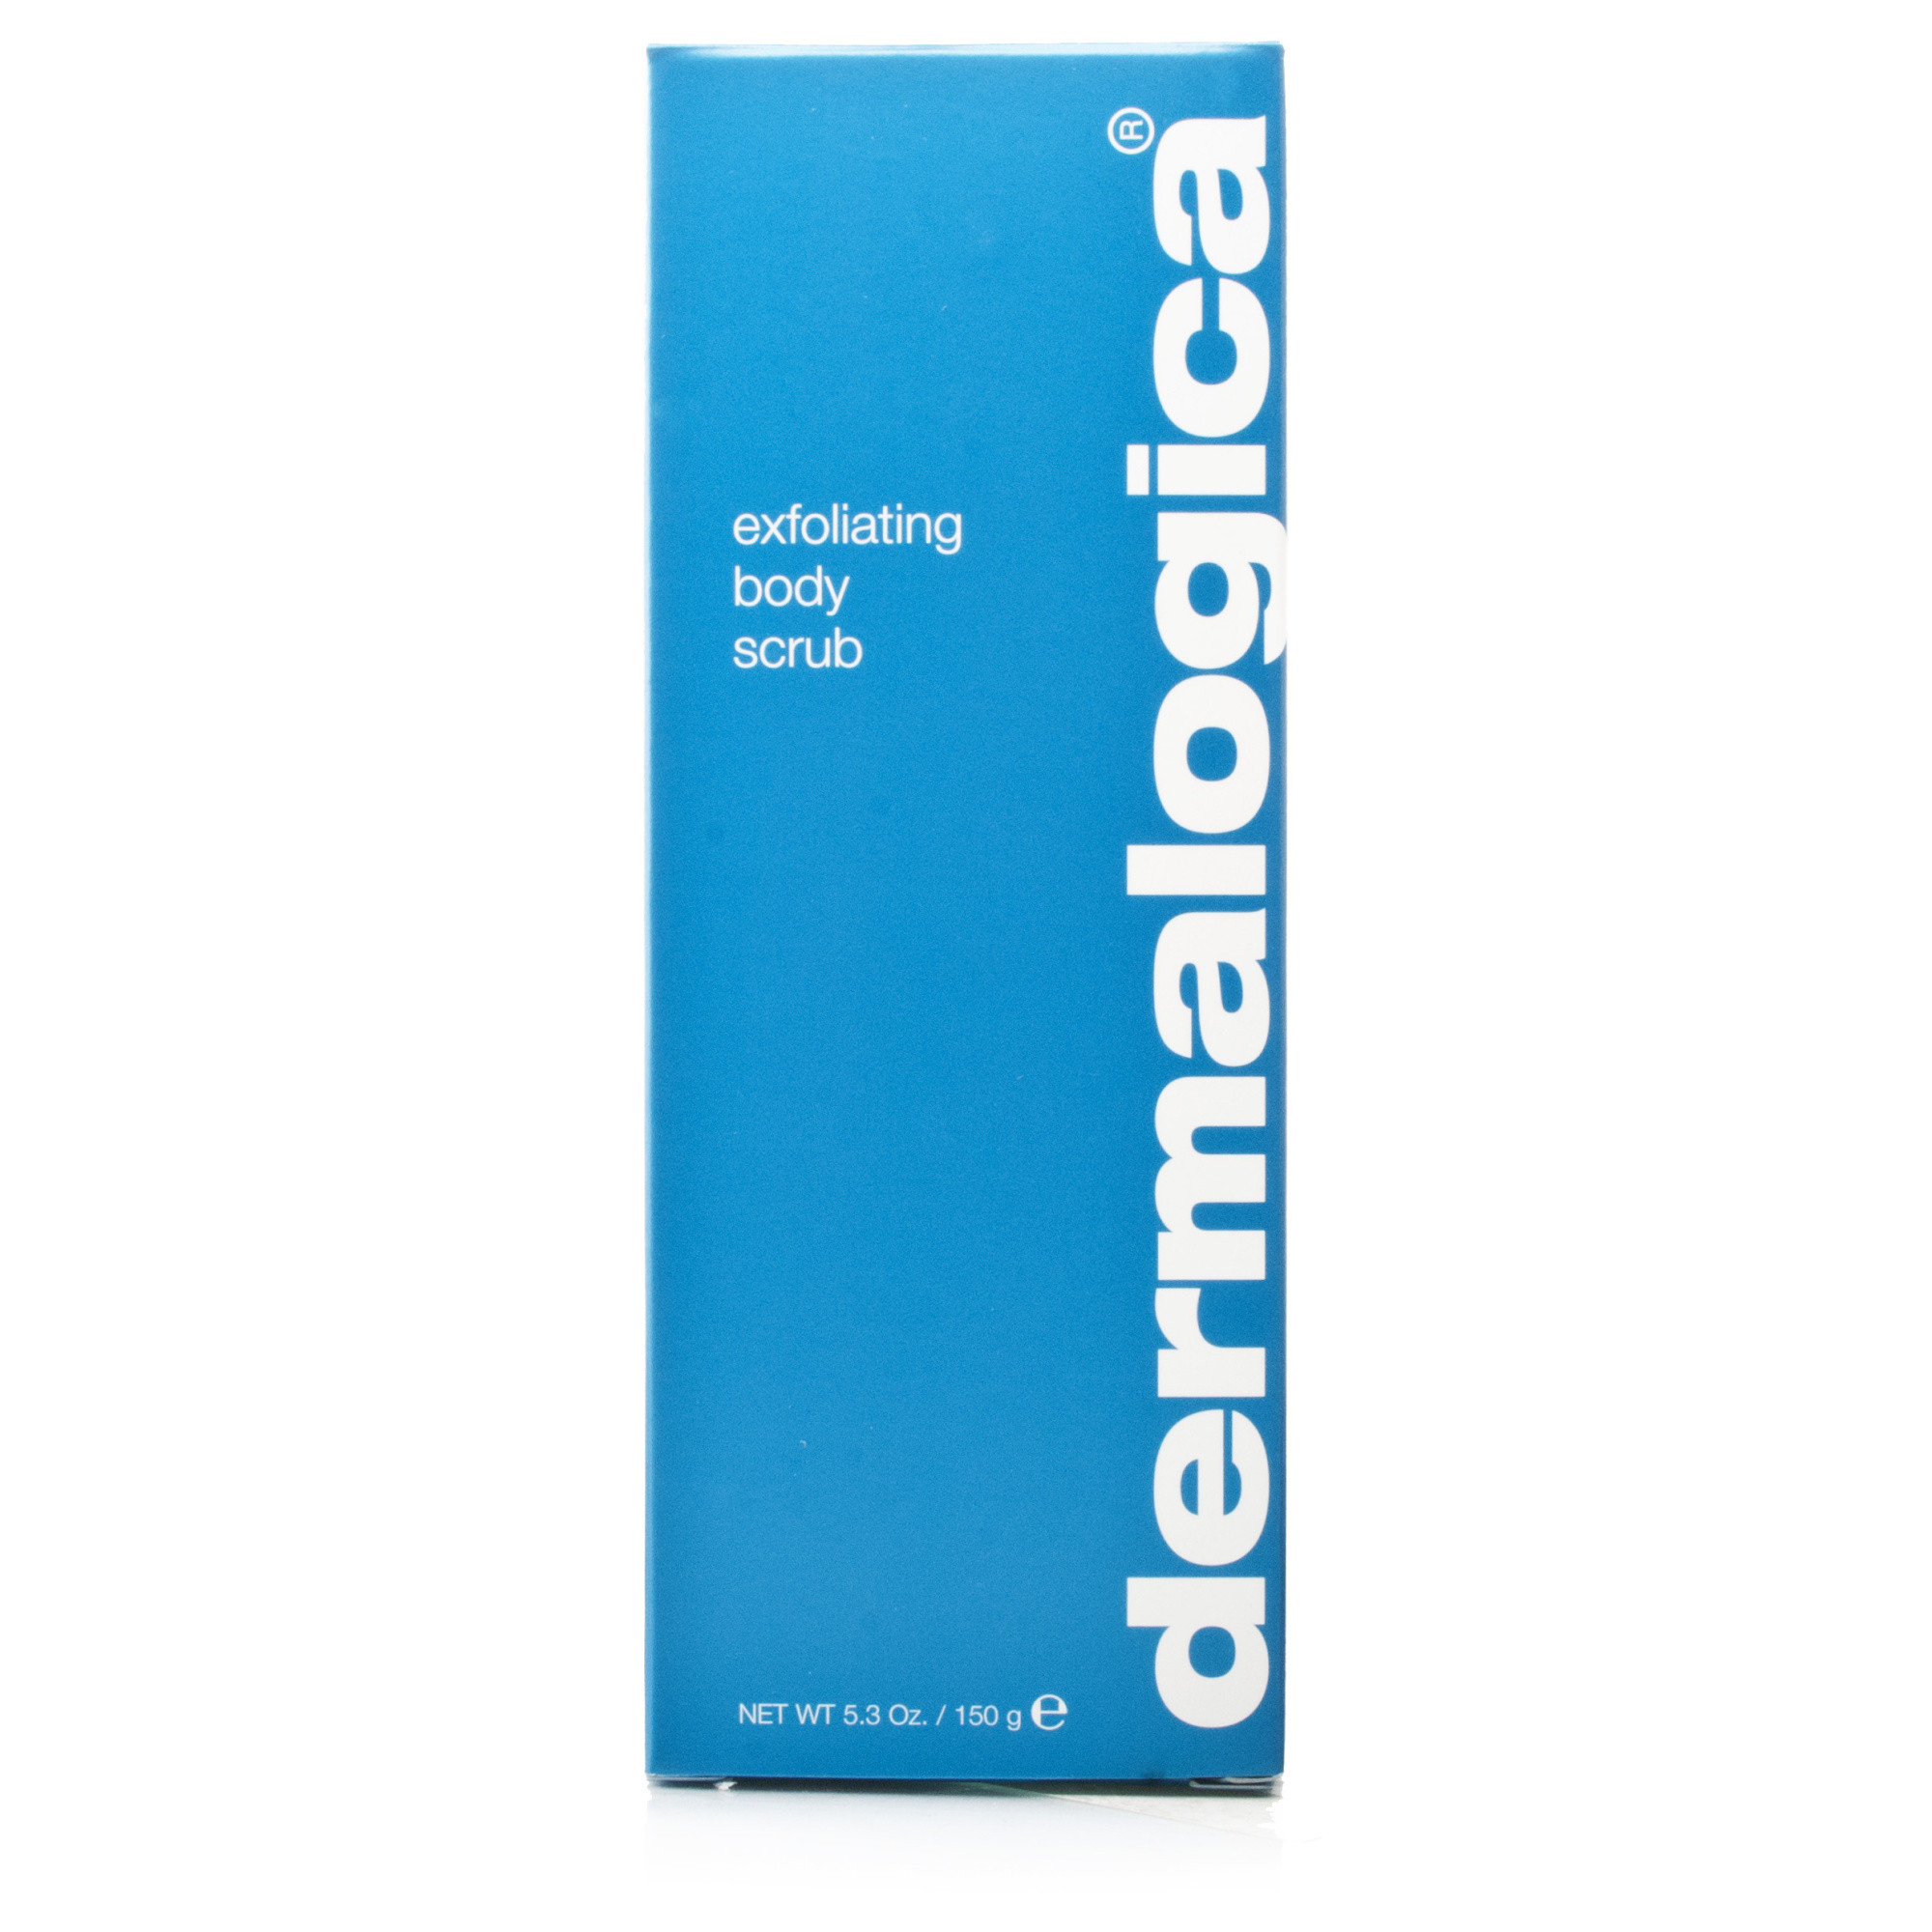 Free shipping on all orders from the Dermalogica® official site. Shop now to receive exclusive promotions and more. Your best skin starts here.